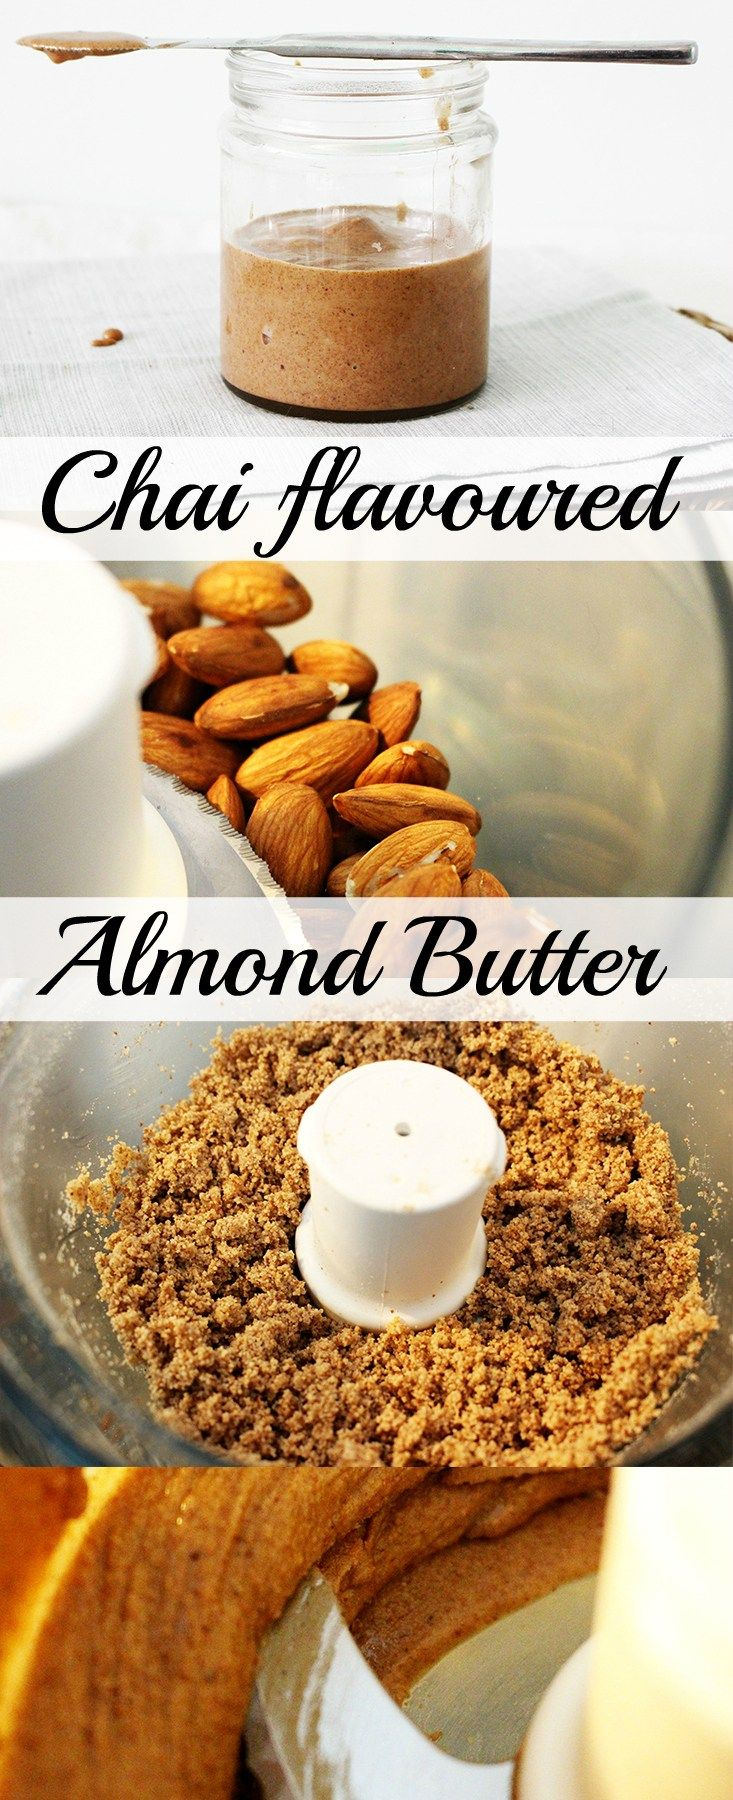 Making your own almond butter is easy and super satisfying: no extra ingredients here! Add Chai herbs for extra flavour or leave it plain.